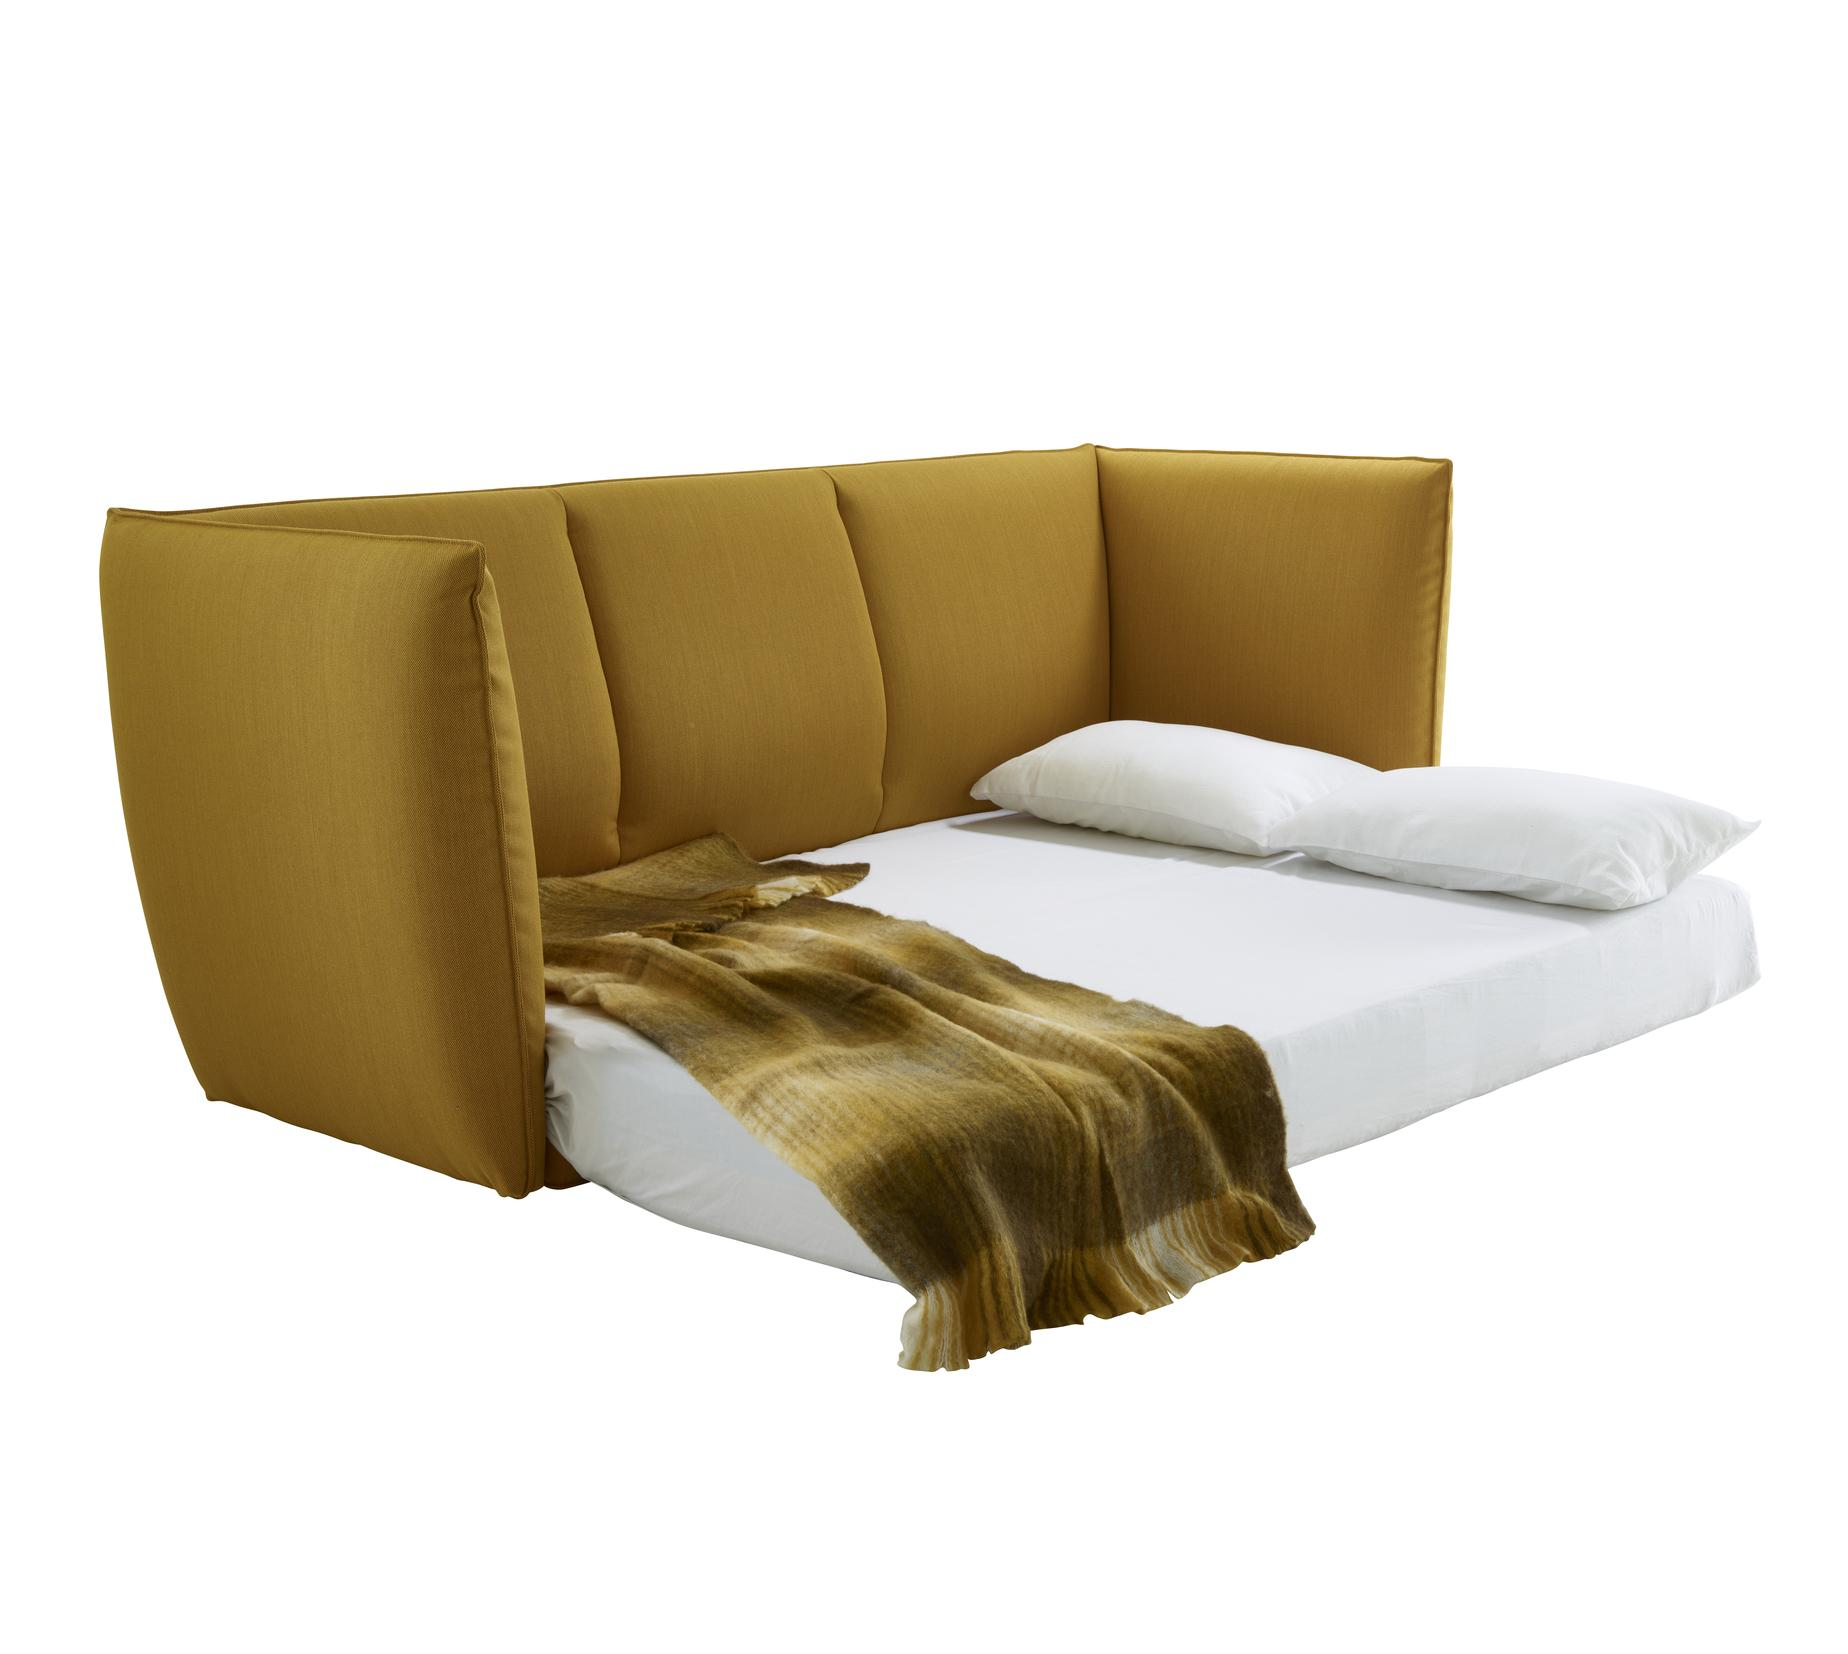 Seats En Sofa Heerlen Softly Sofa Beds Designer Nick Rennie Ligne Roset